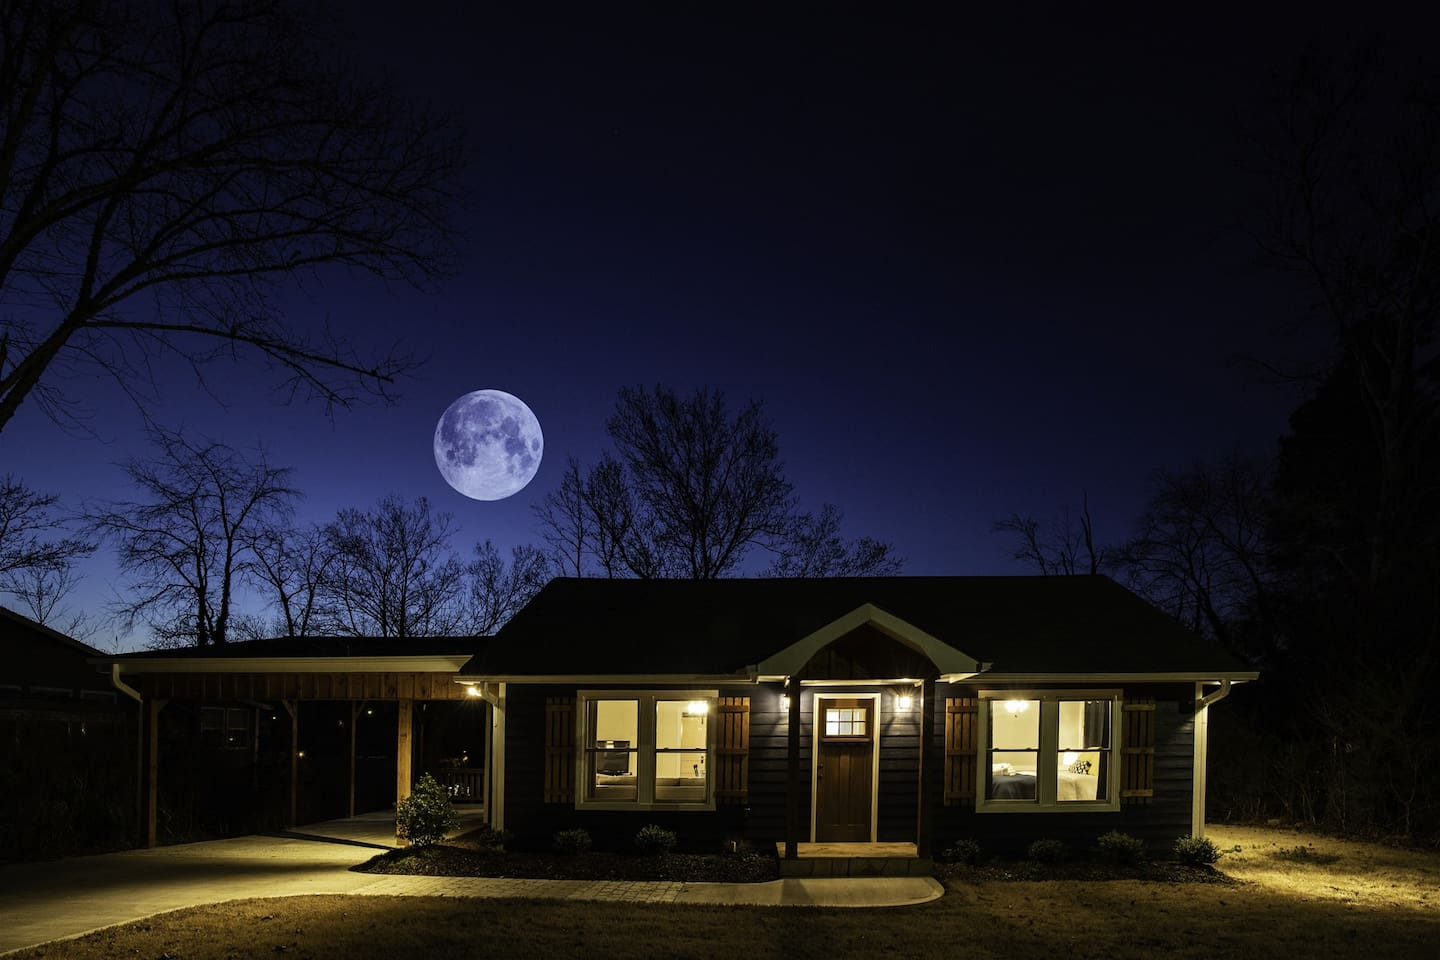 Blue Moon Cottage at night